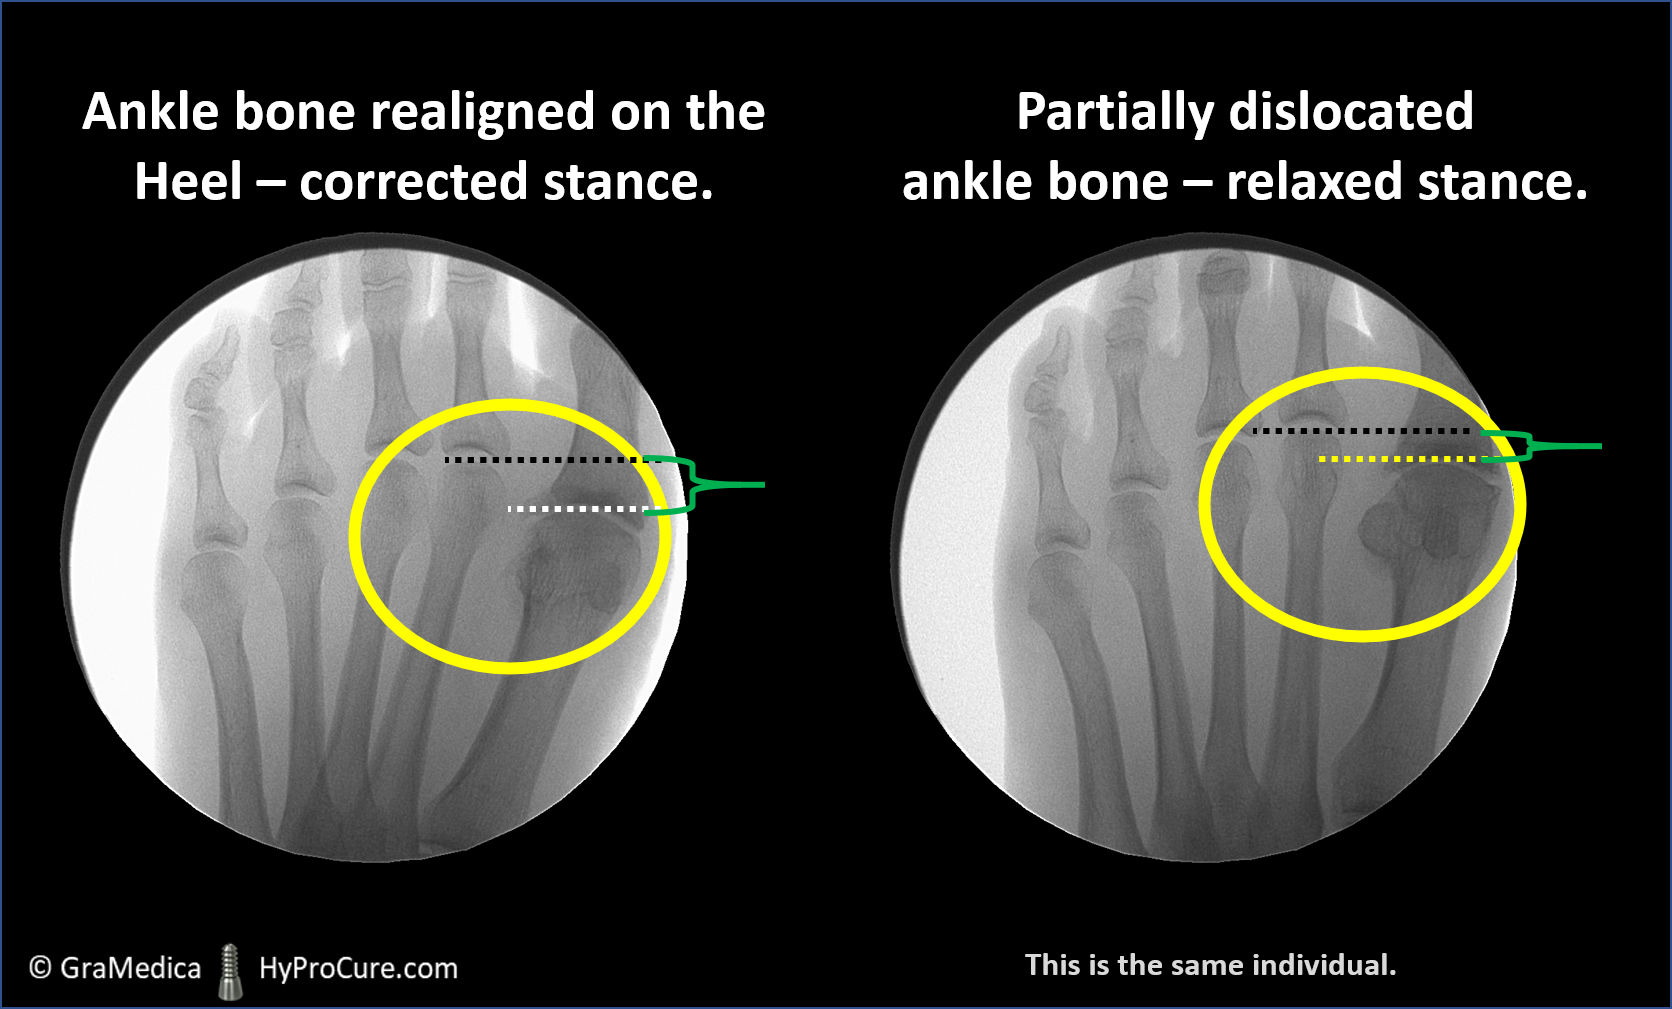 Foot x-ray showing an ankle bone realigned on the heel - corrected stance and a partially dislocated ankle bone - relaxed stance